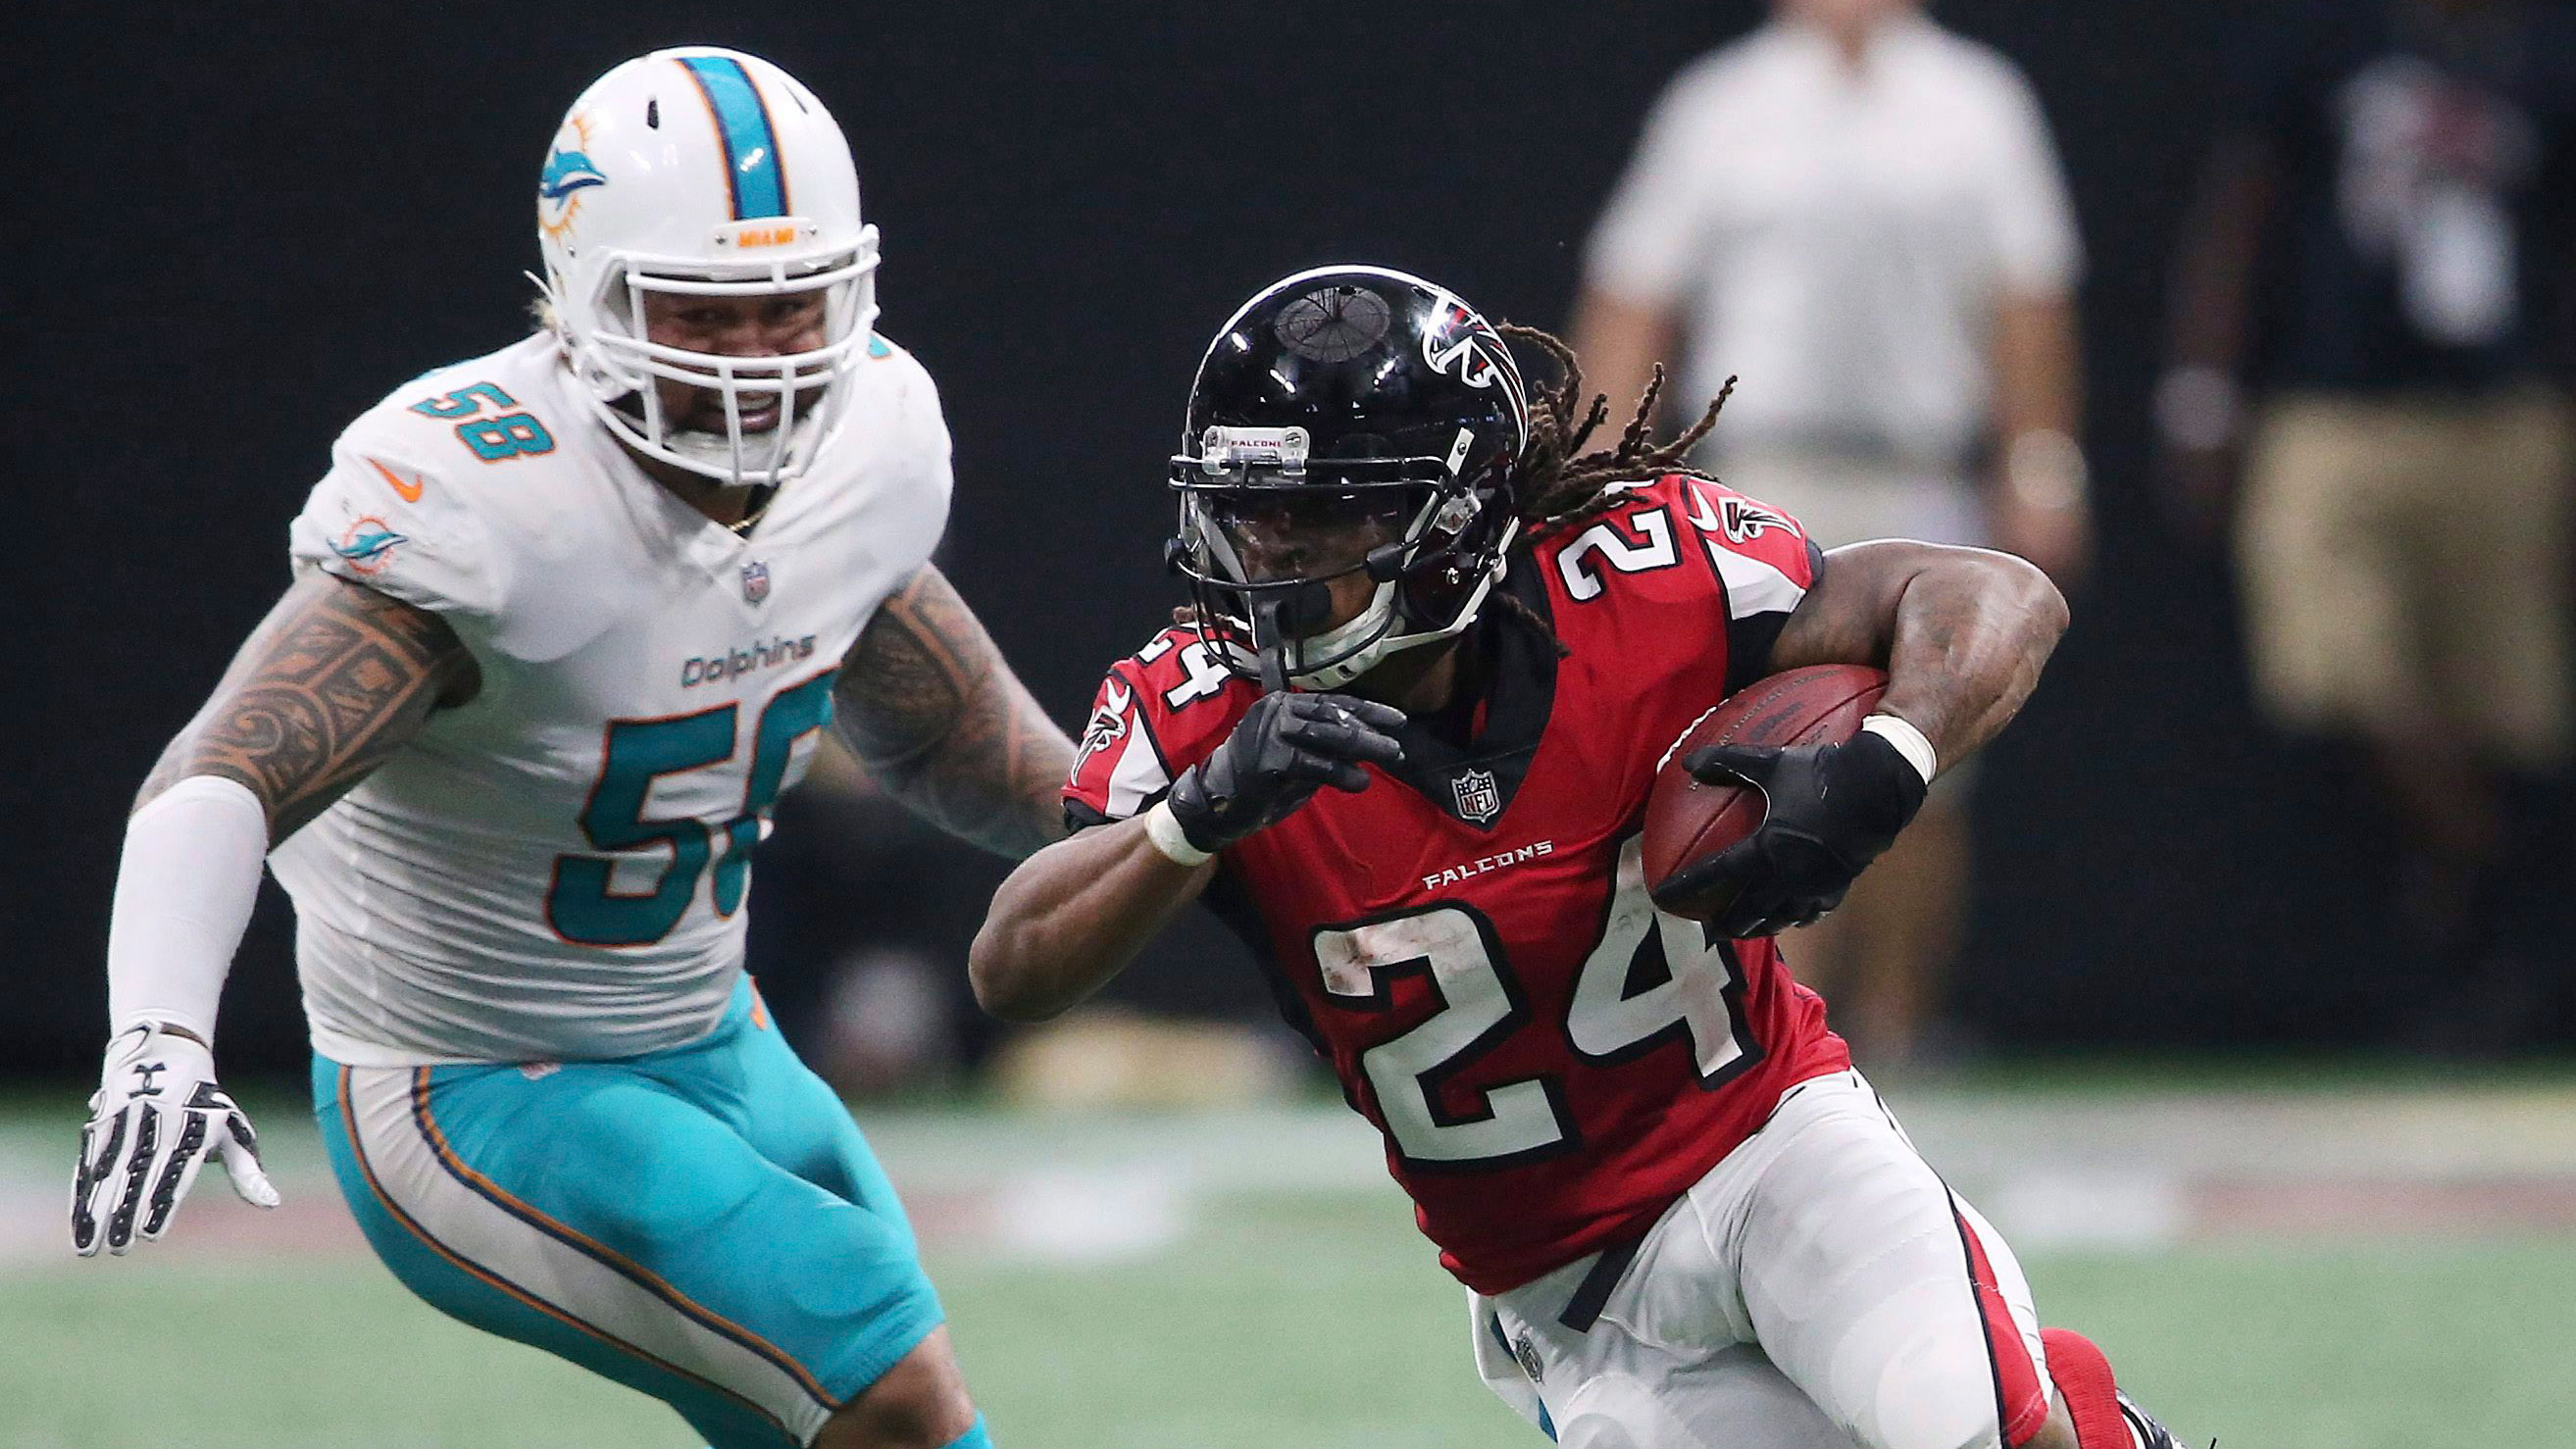 Falcons' Freeman could miss another game with concussion